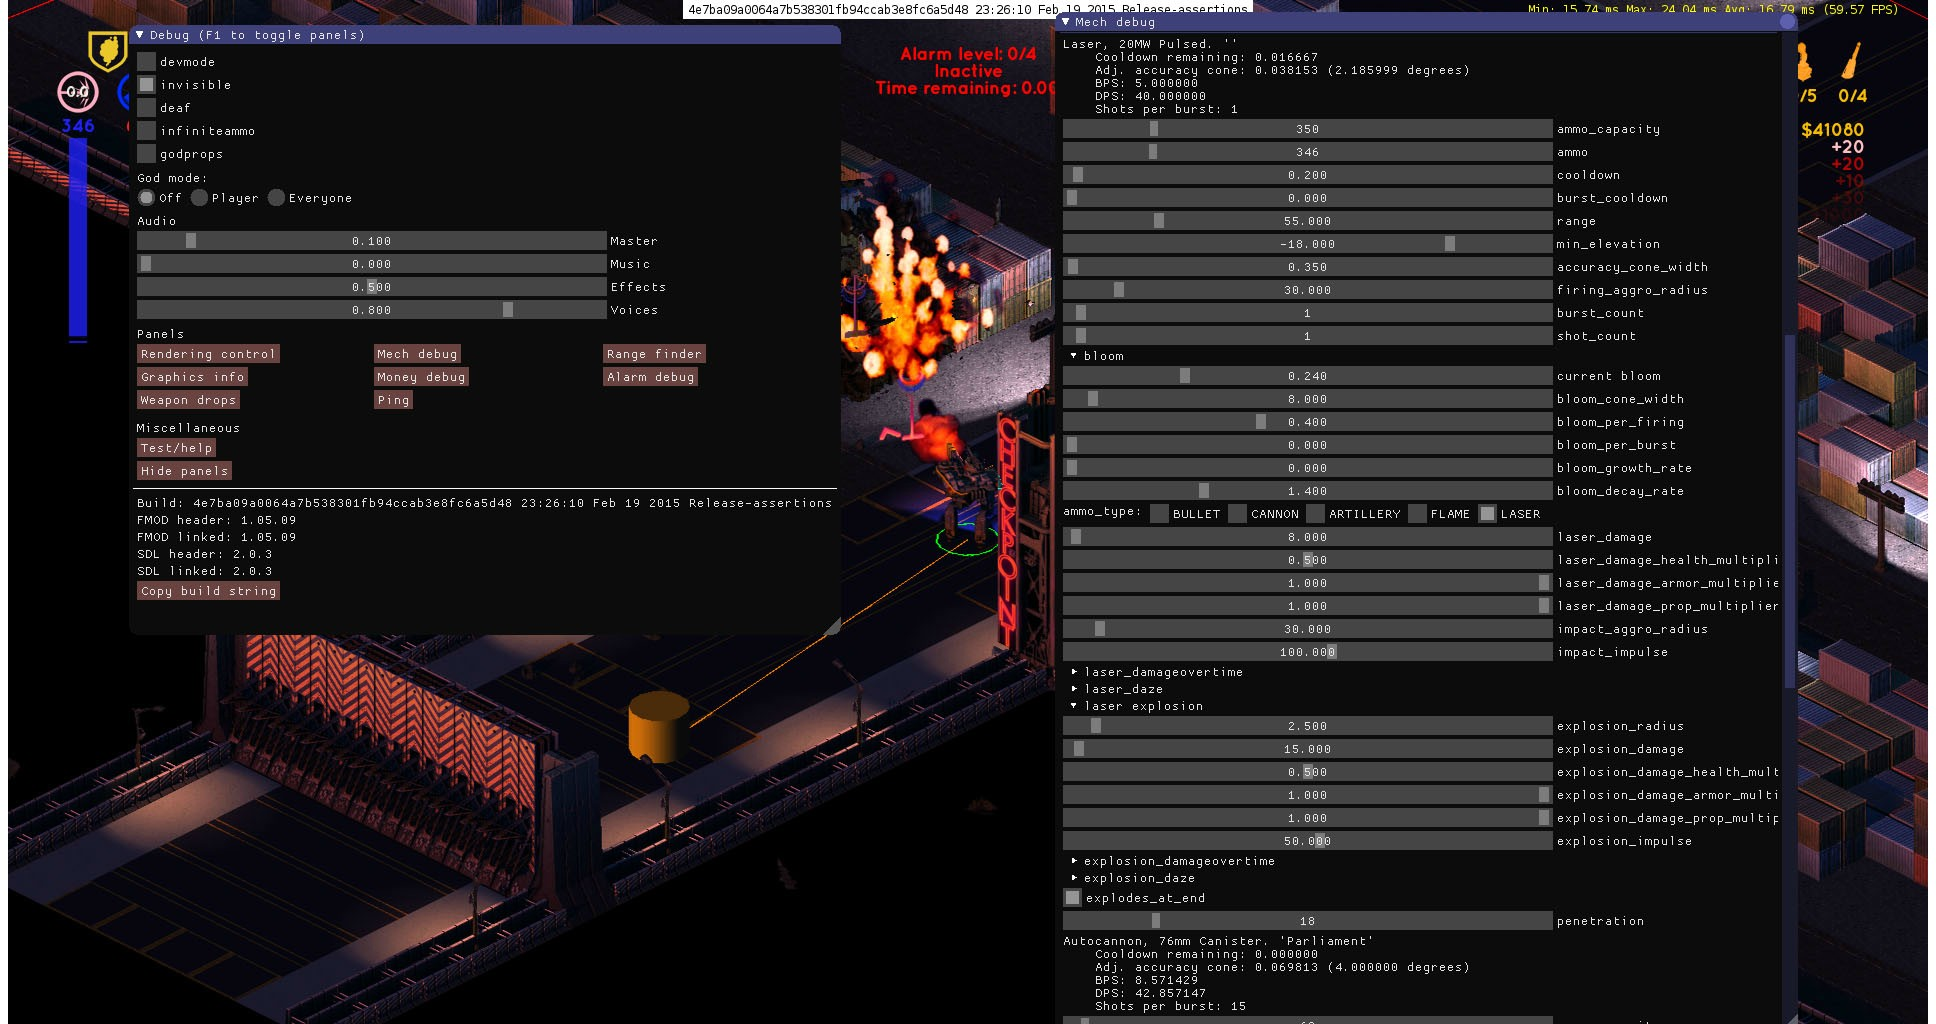 We built the game ourselves in C++ & allow for live-editing values: